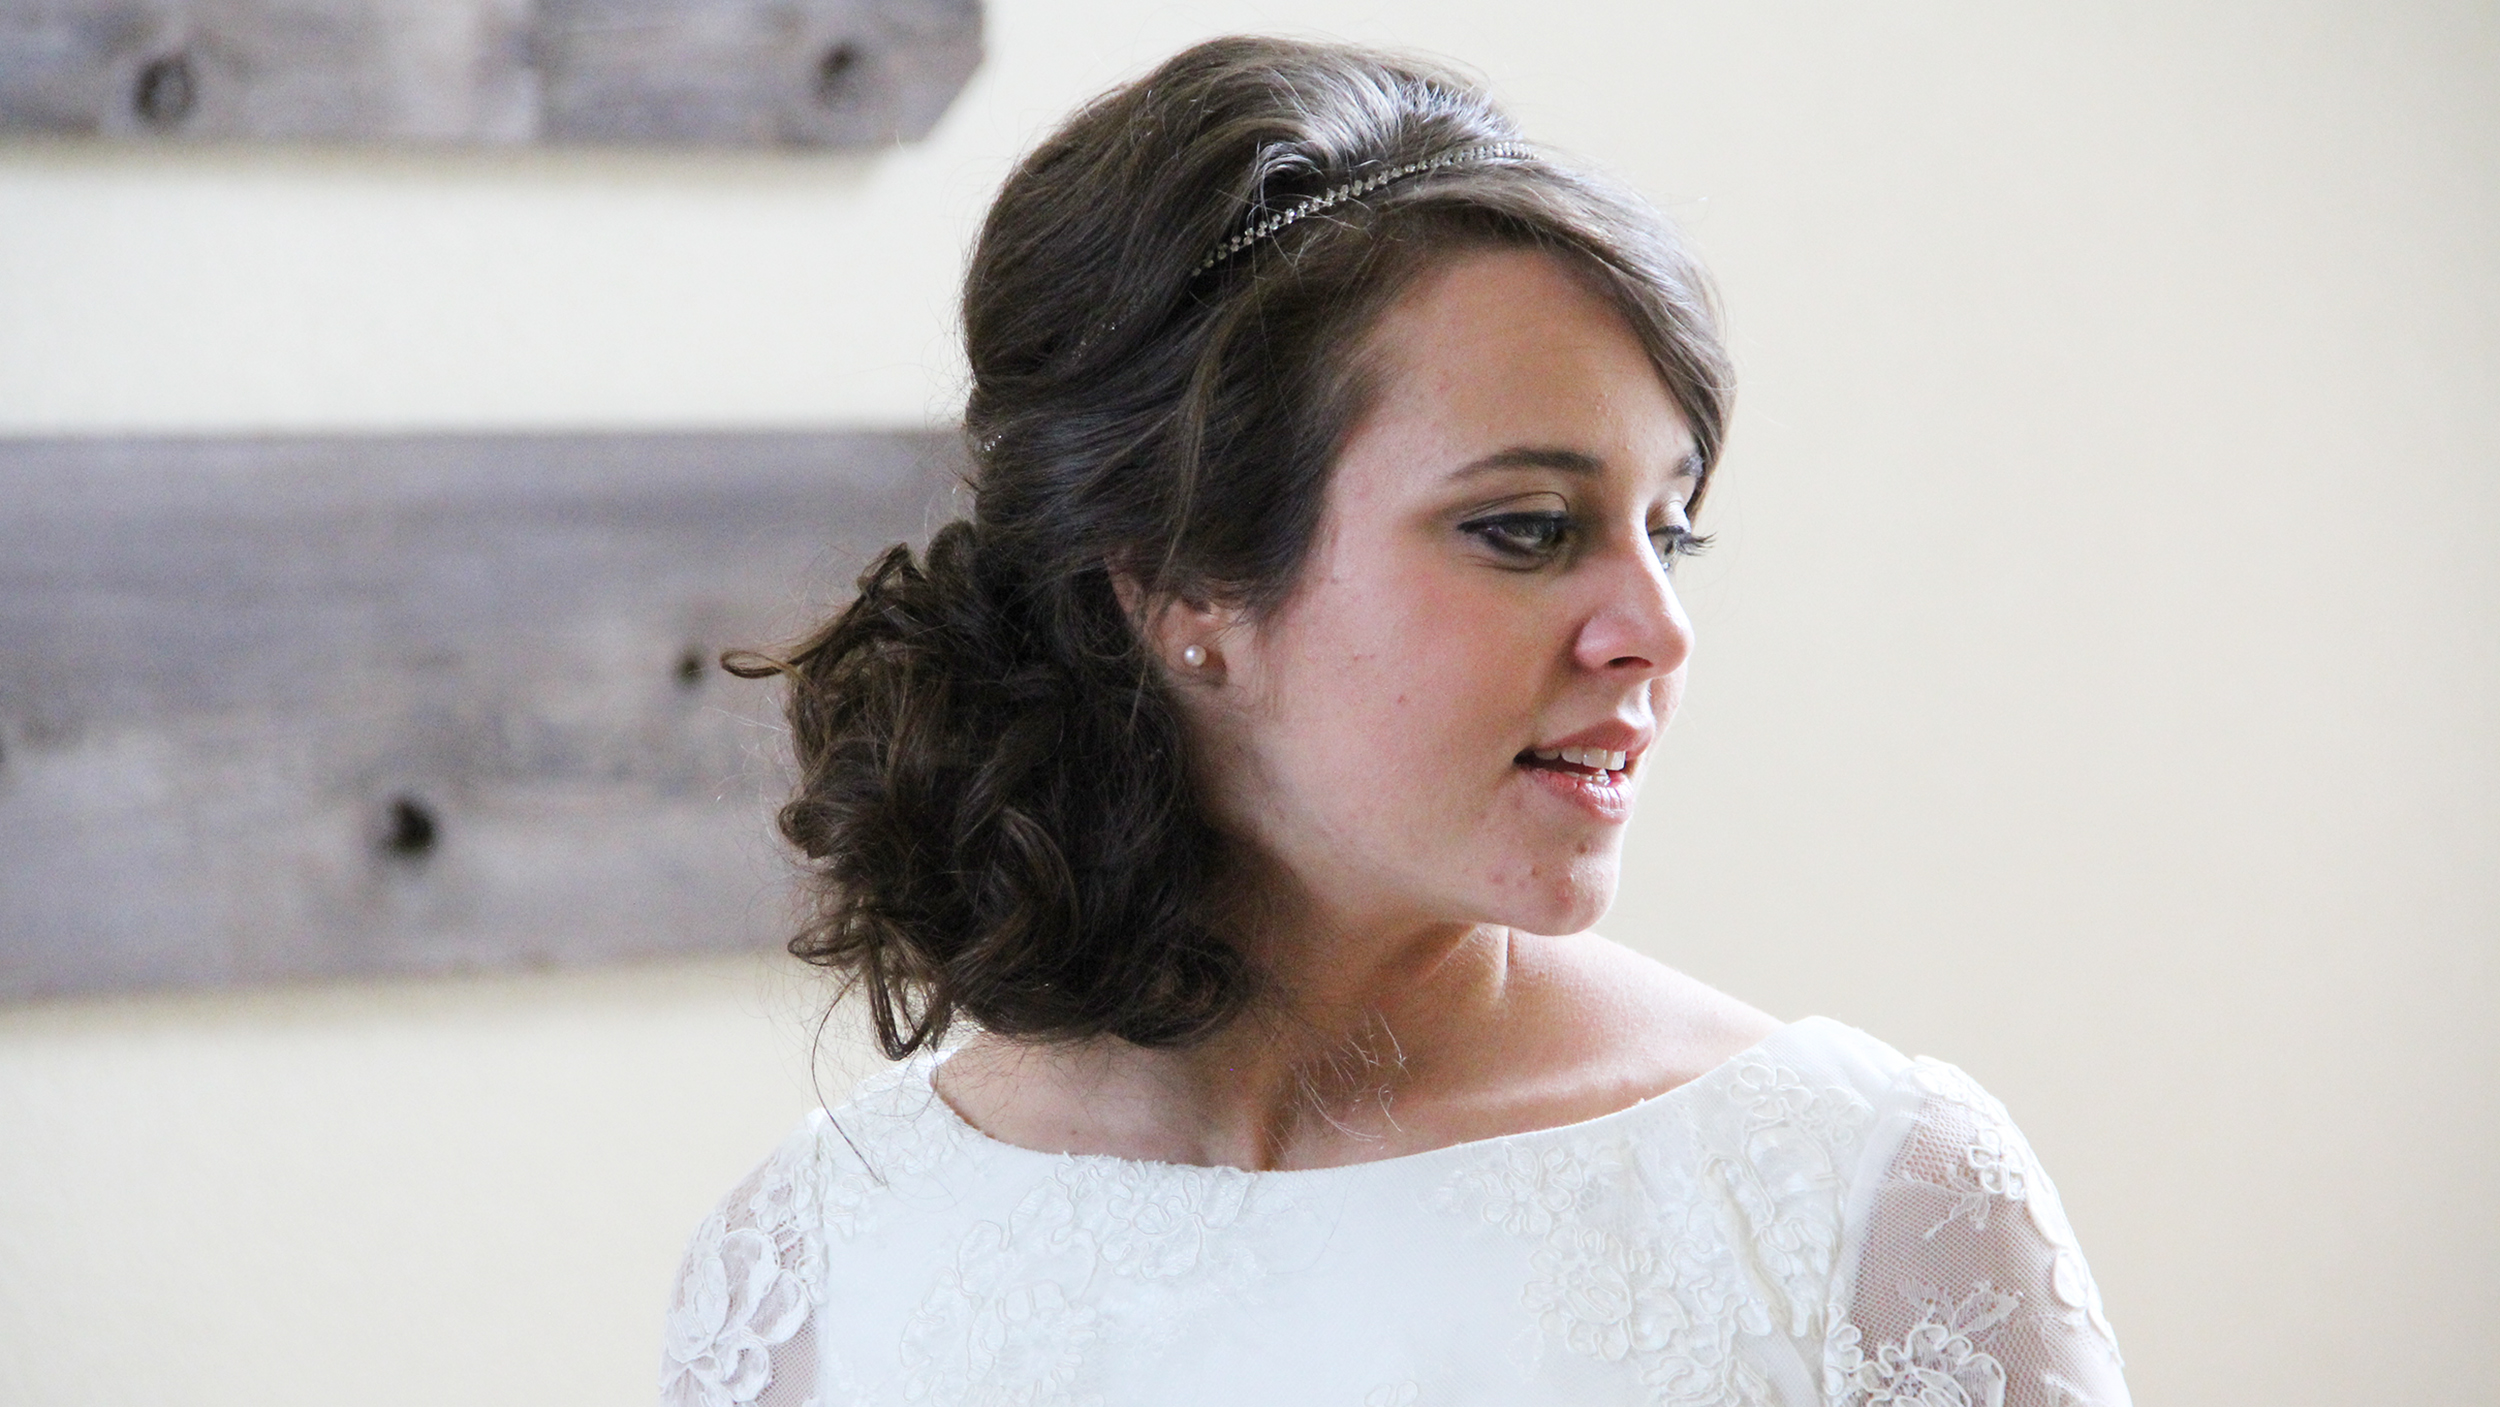 Jinger Duggar Wedding Dress.The Duggars Have A Special Wedding Dress Tradition